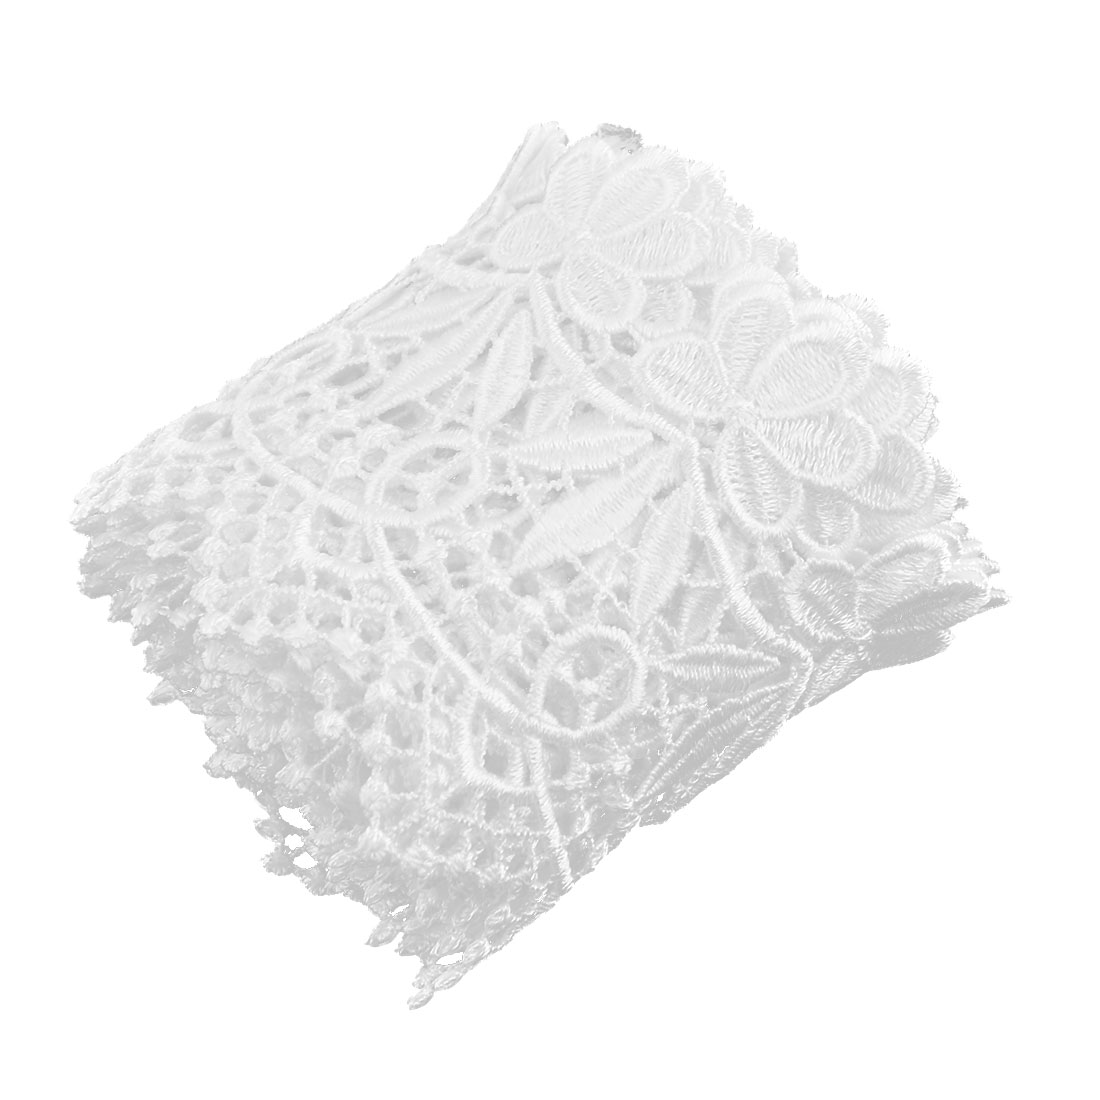 Home Polyester Fower Hollow Out Sewing Lace Trim Applique White 2.8 Inches Width